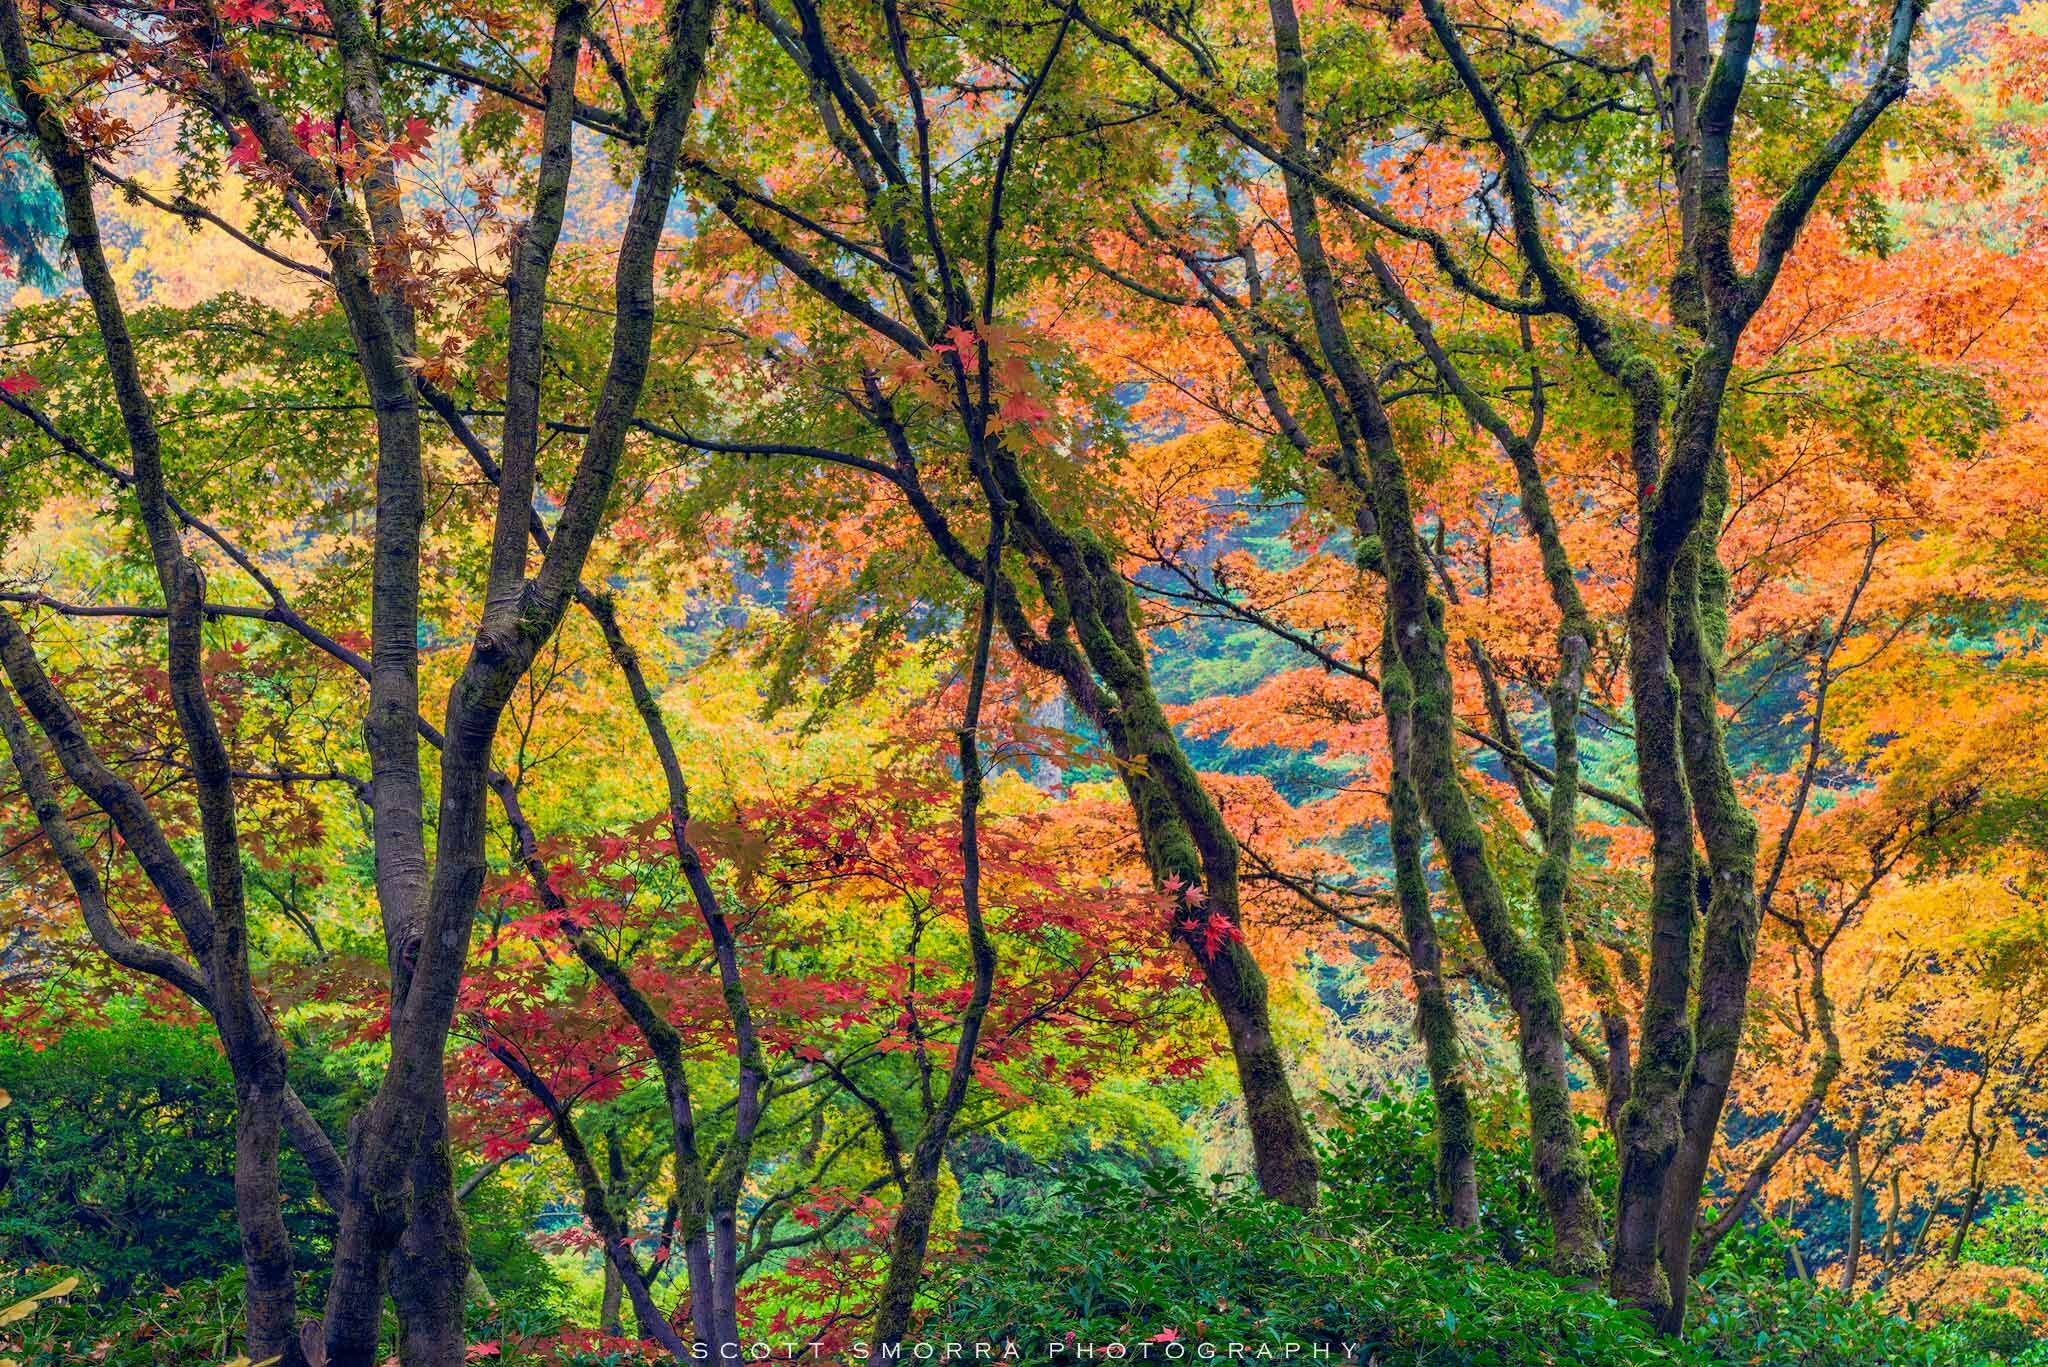 Peak fall colors glow in a stand of beautiful Japanese Maple trees at the Portland Japanese Garden, Portland, Oregon.